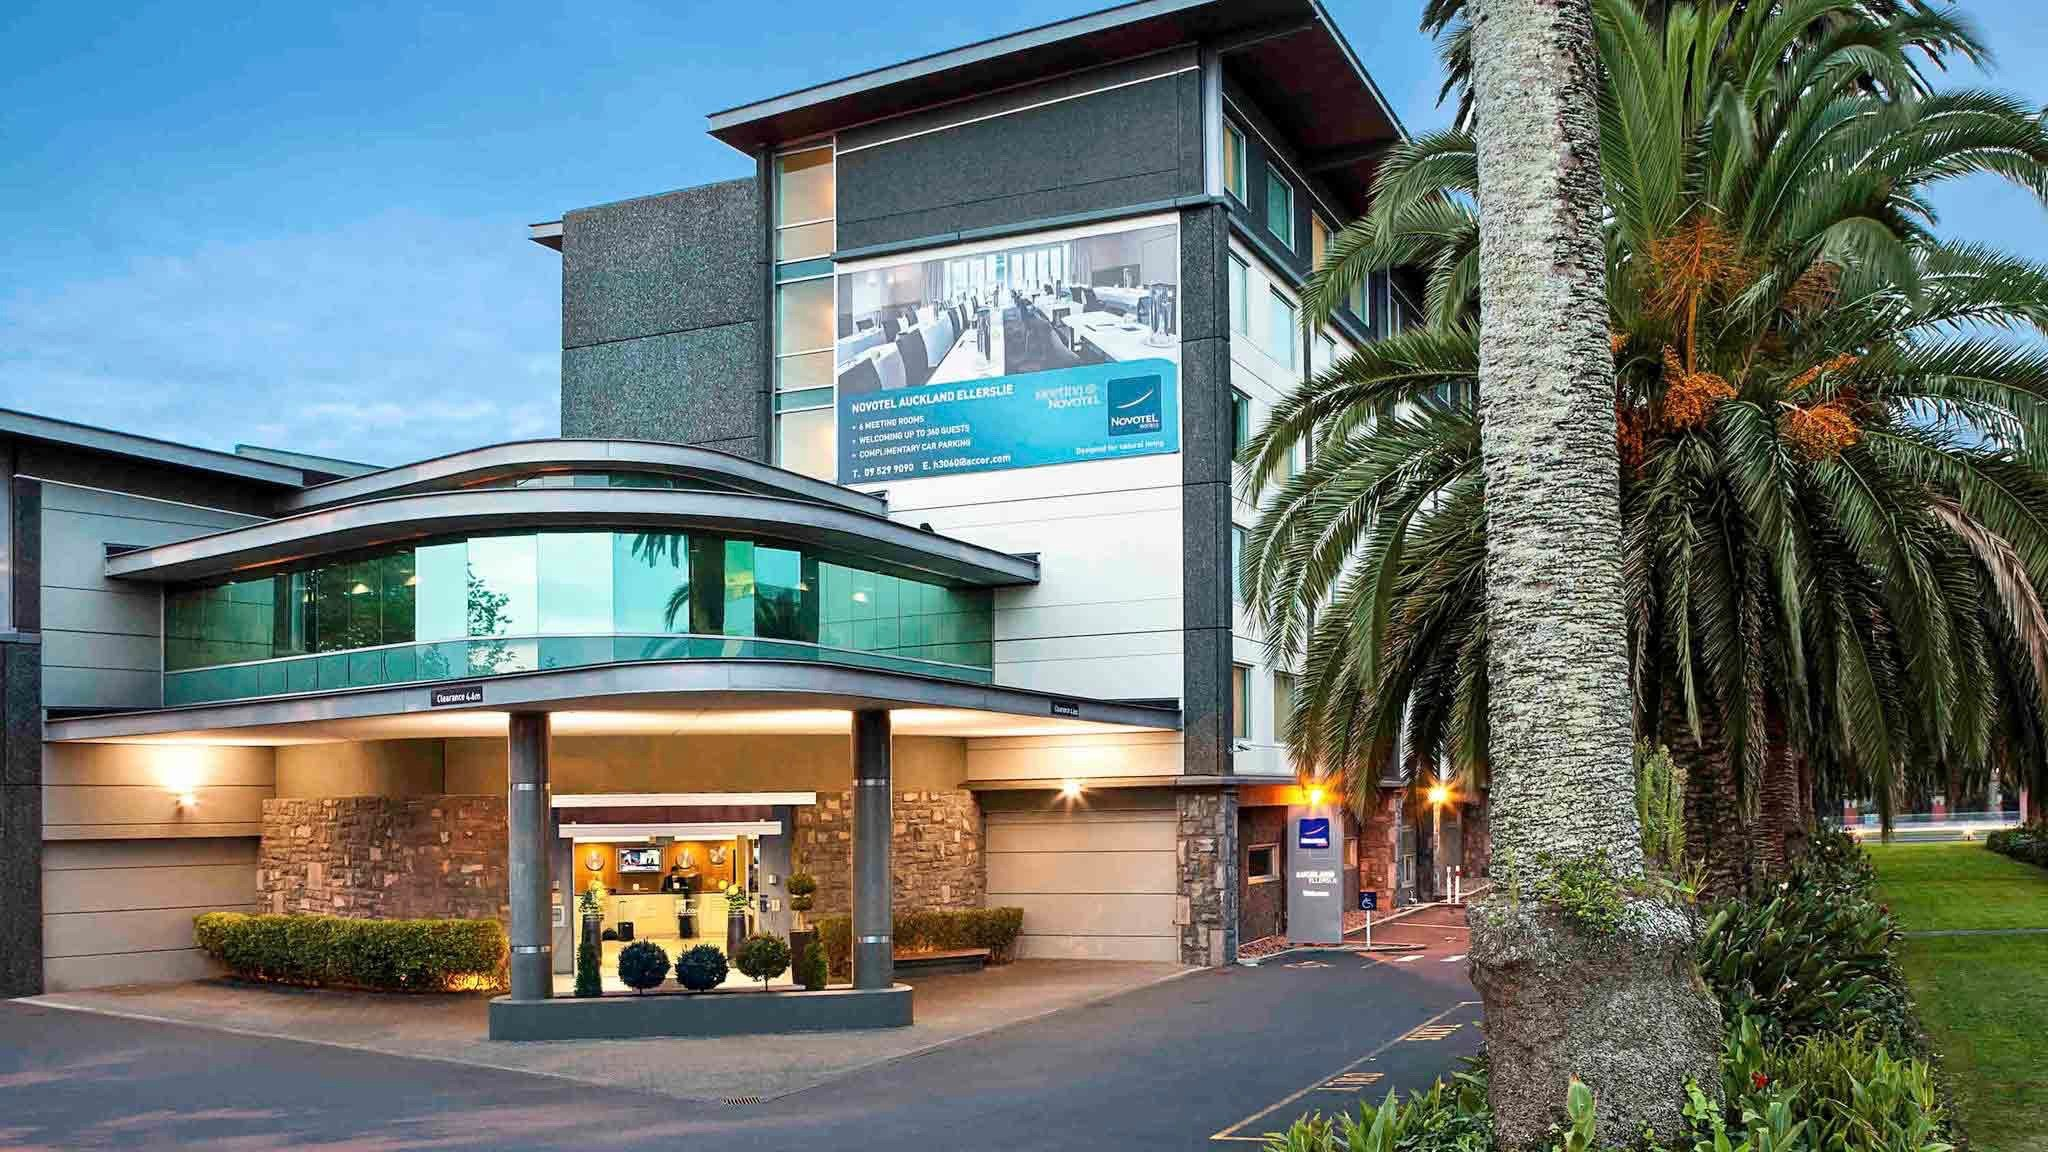 IBIS Auckland Ellerslie Hotel exterior, cheap 3 star hotel for business or families